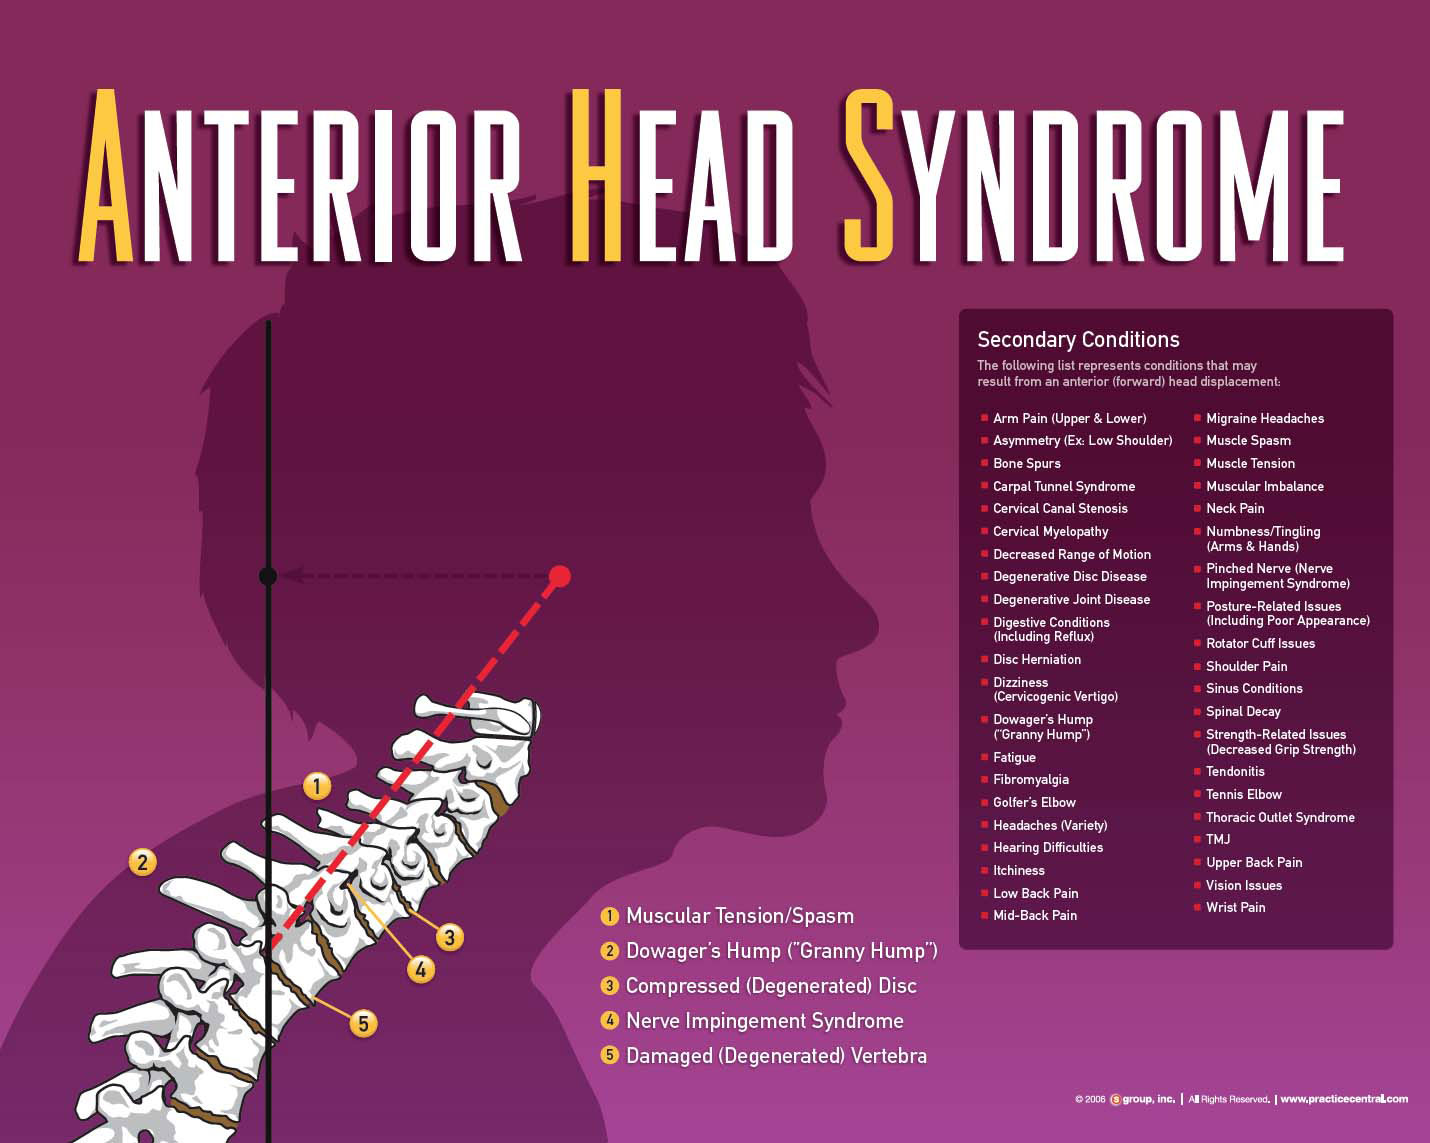 Anterior Head Syndrome facts